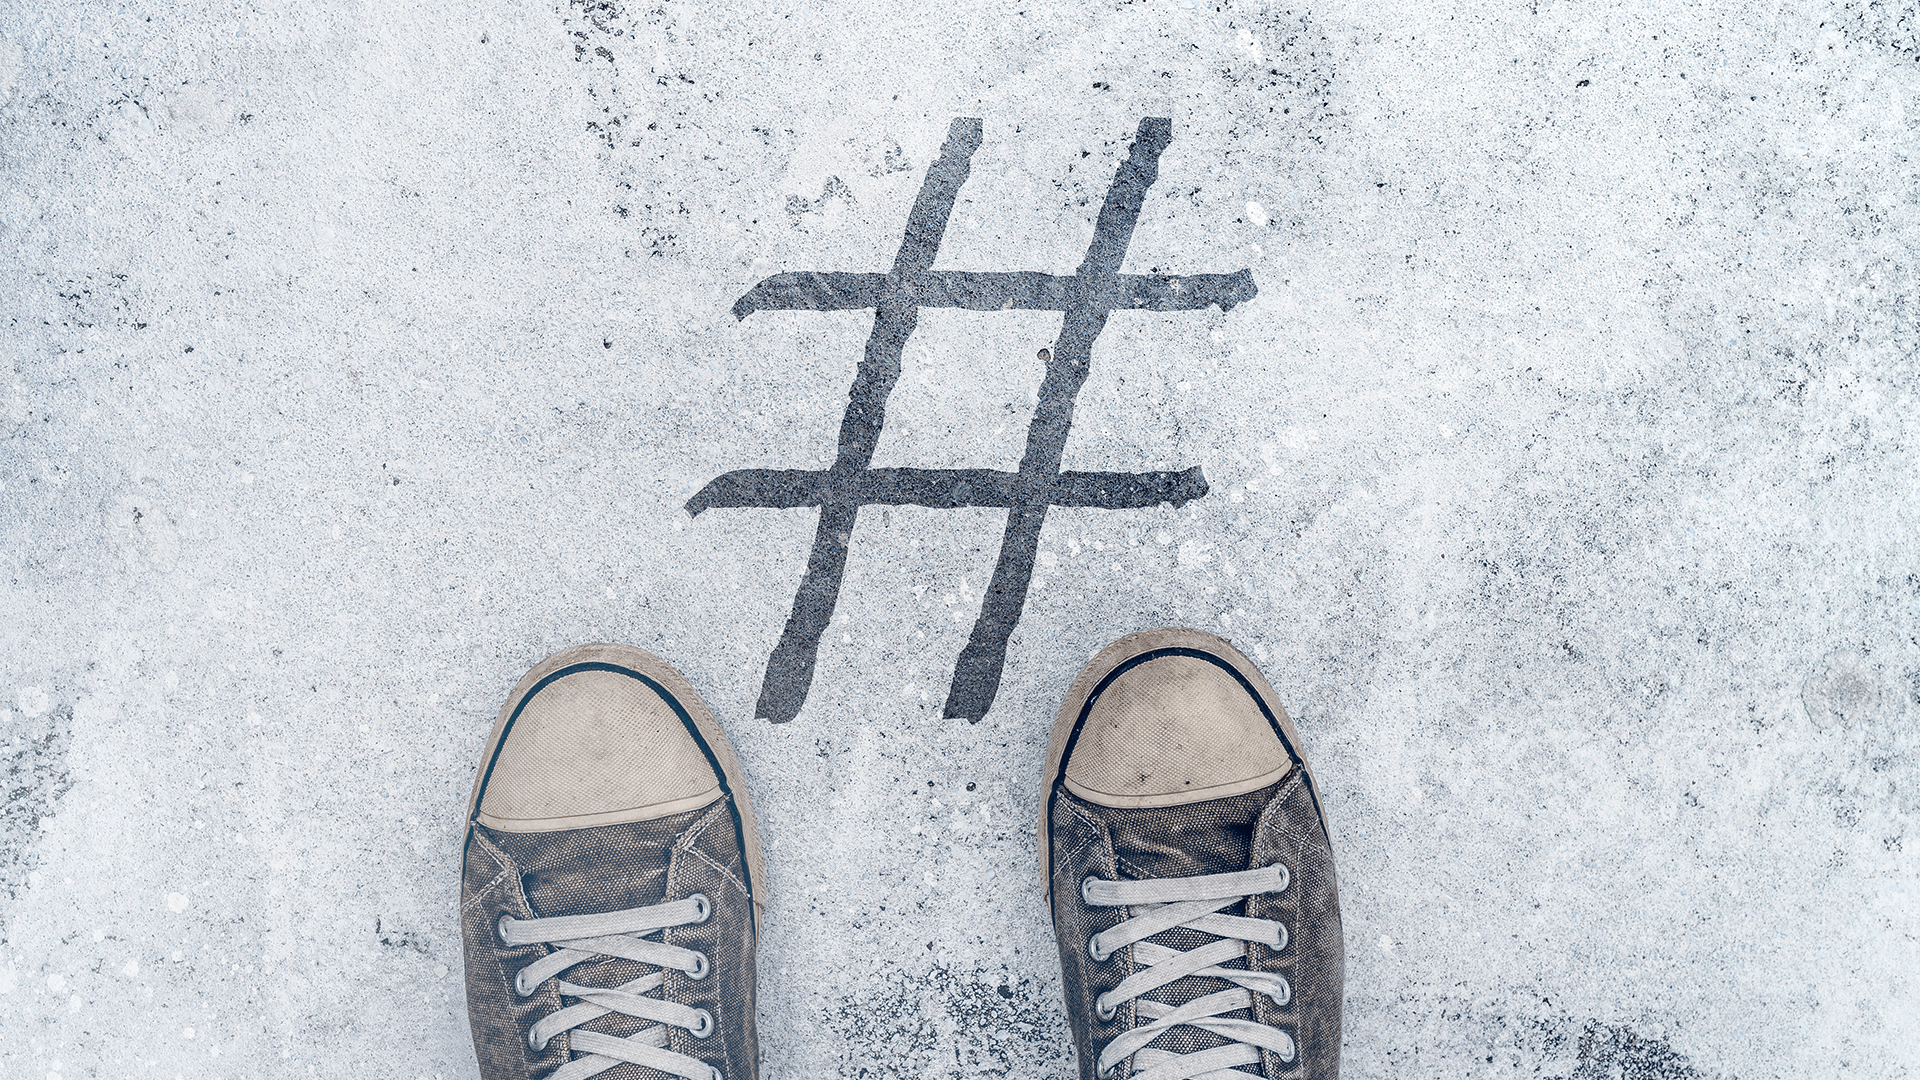 Too Many Facebook Hashtags Can Hurt Your Brand